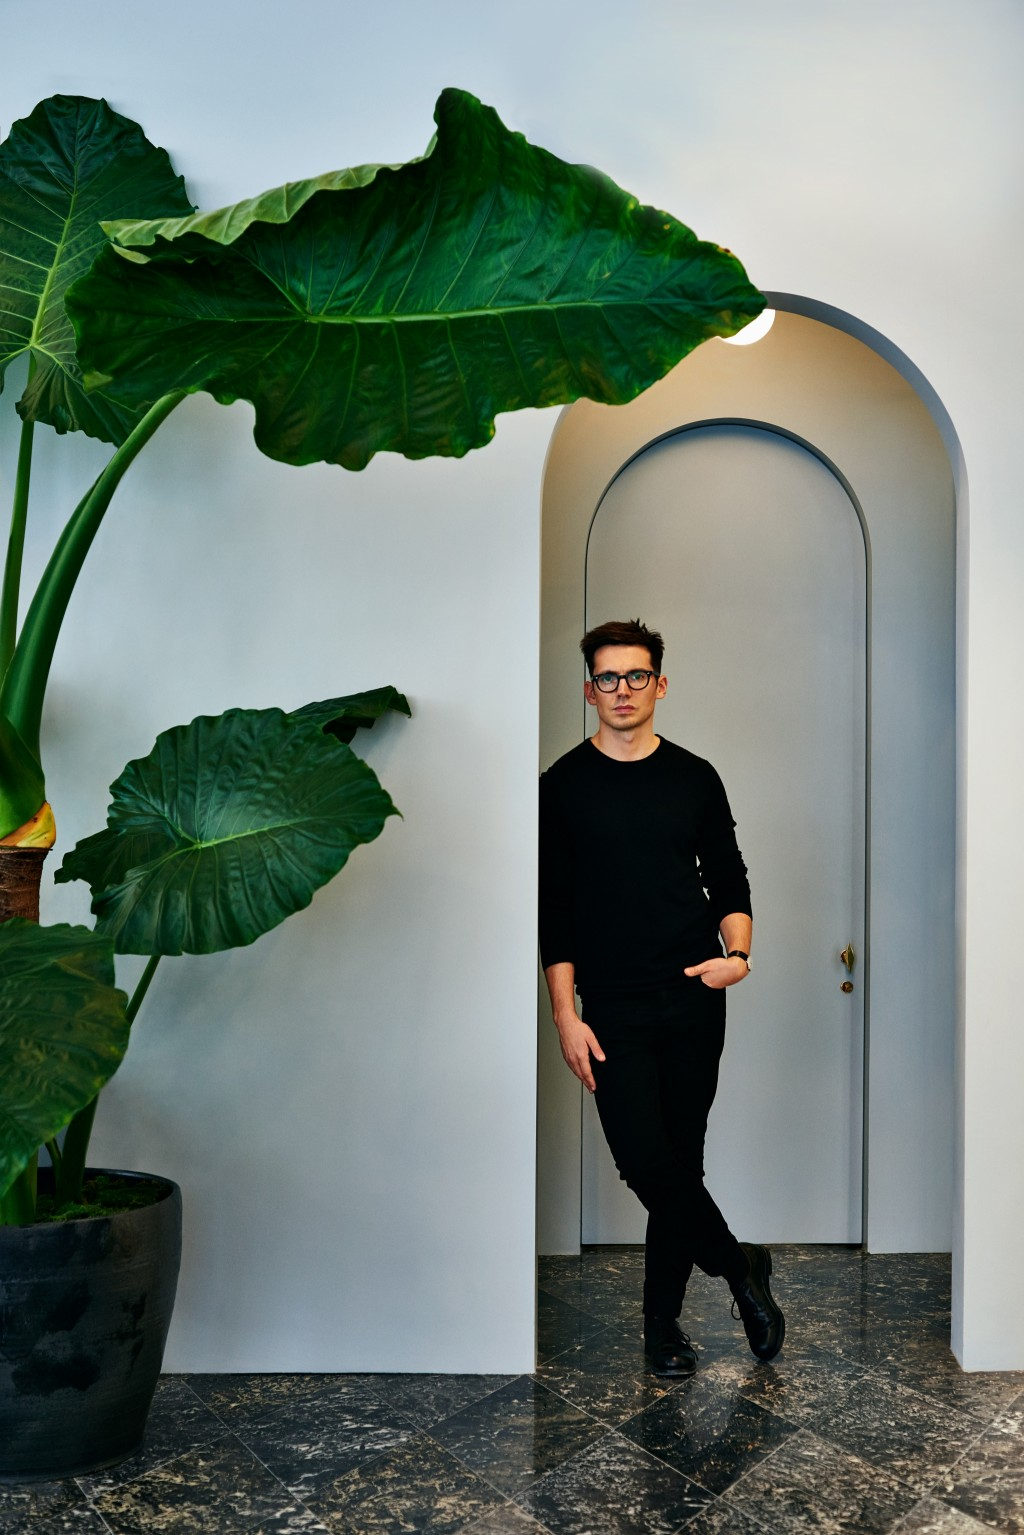 Erdem Moralioglu Talks Sustainability and the Future of Fashion